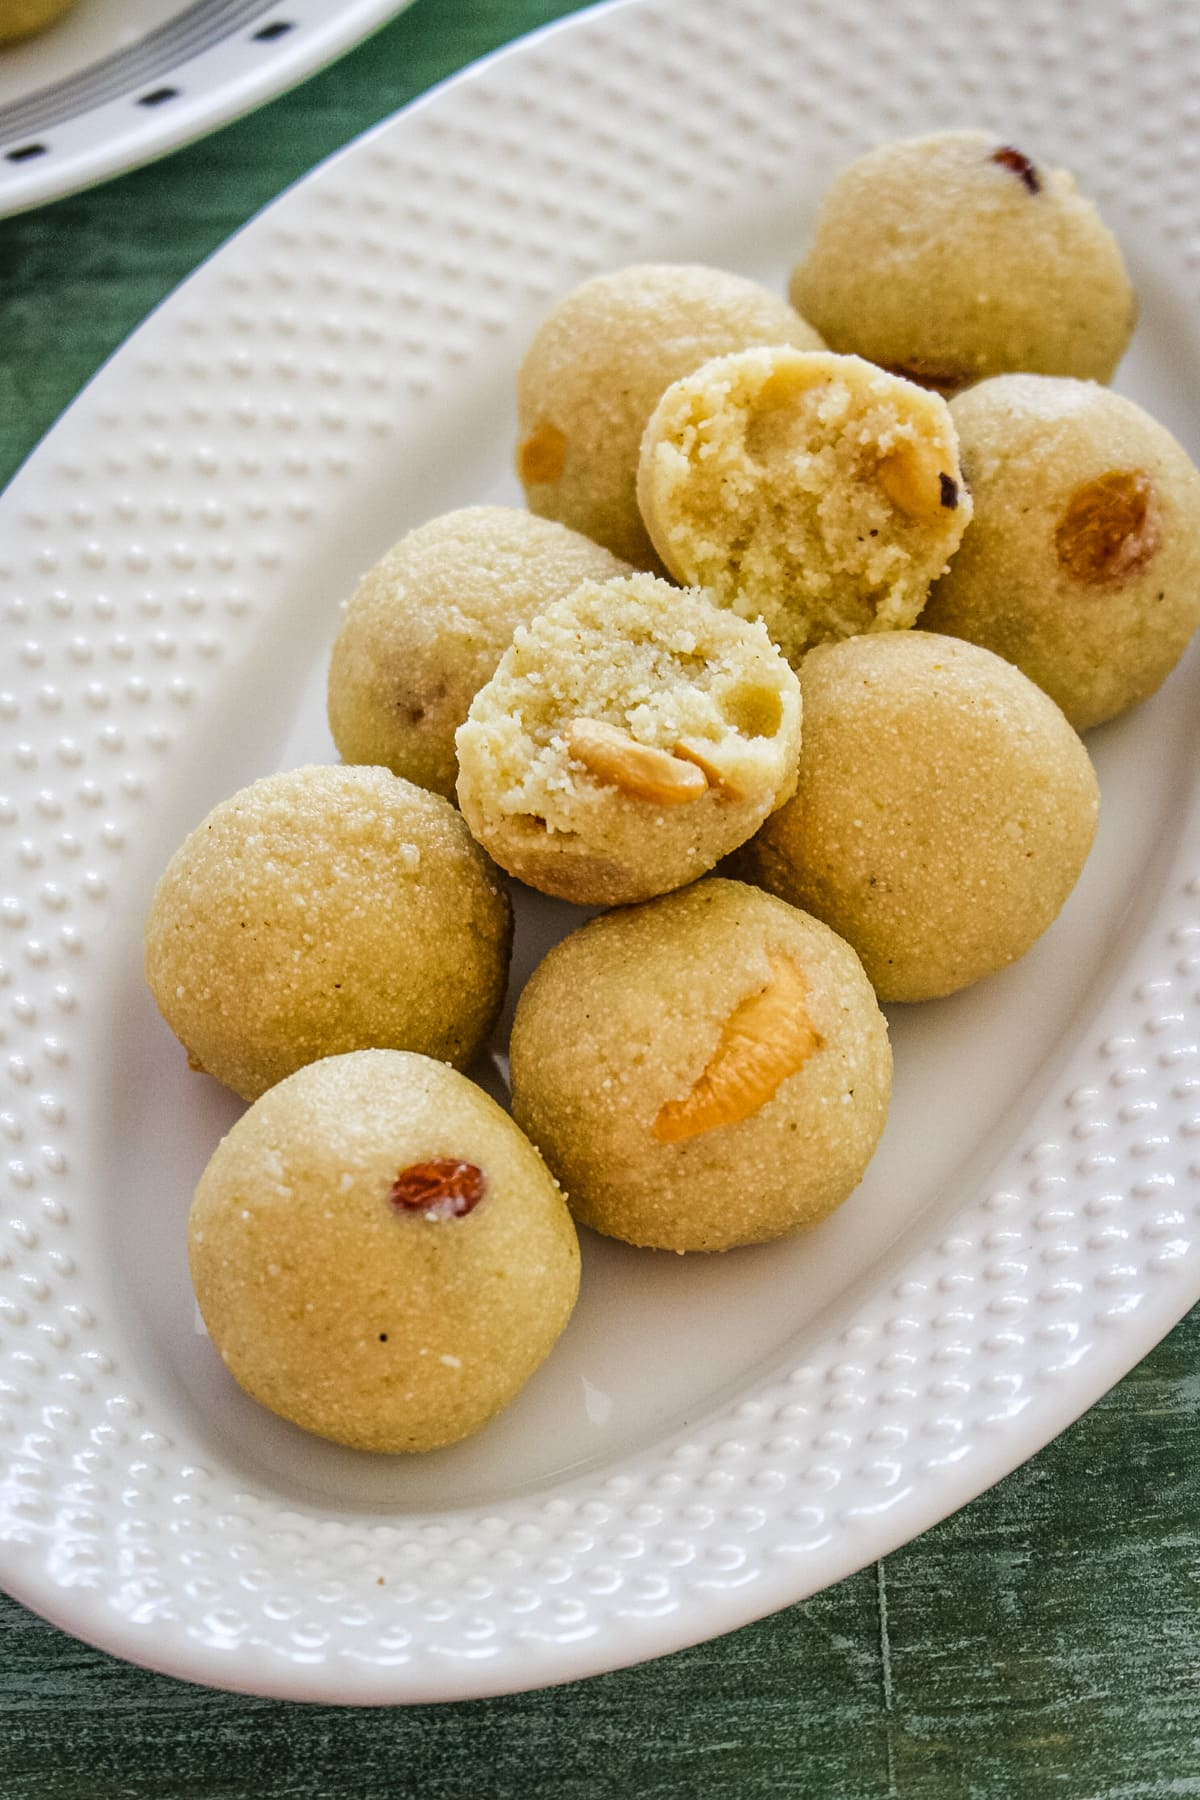 Top view of rava ladoo in oval plate with one laddu cut into half